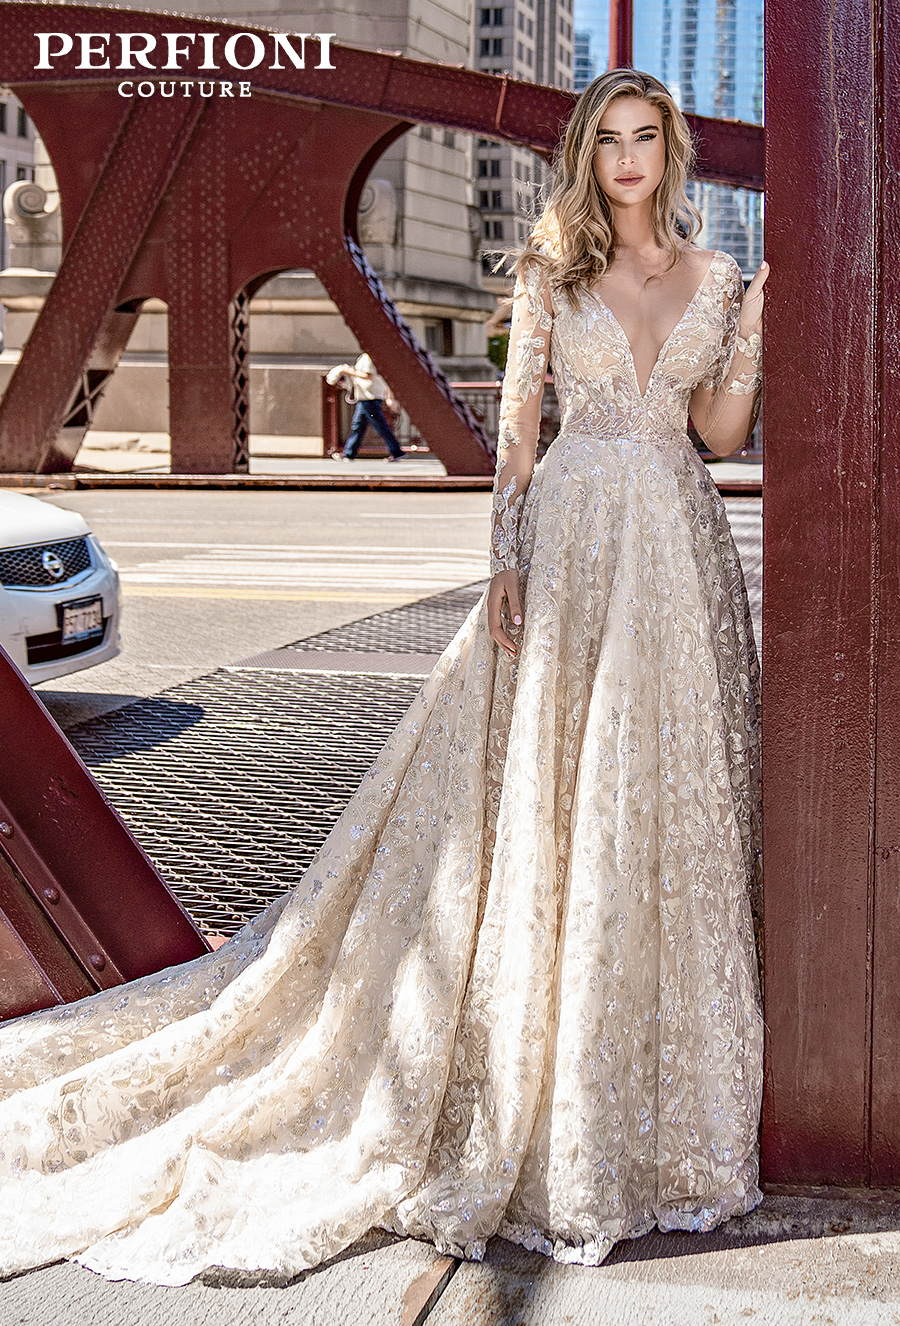 perfioni 2020 love season bridal long sleeves deep v neck full embellishment romantic glamorous gold a line wedding dress v back chapel train (010) mv